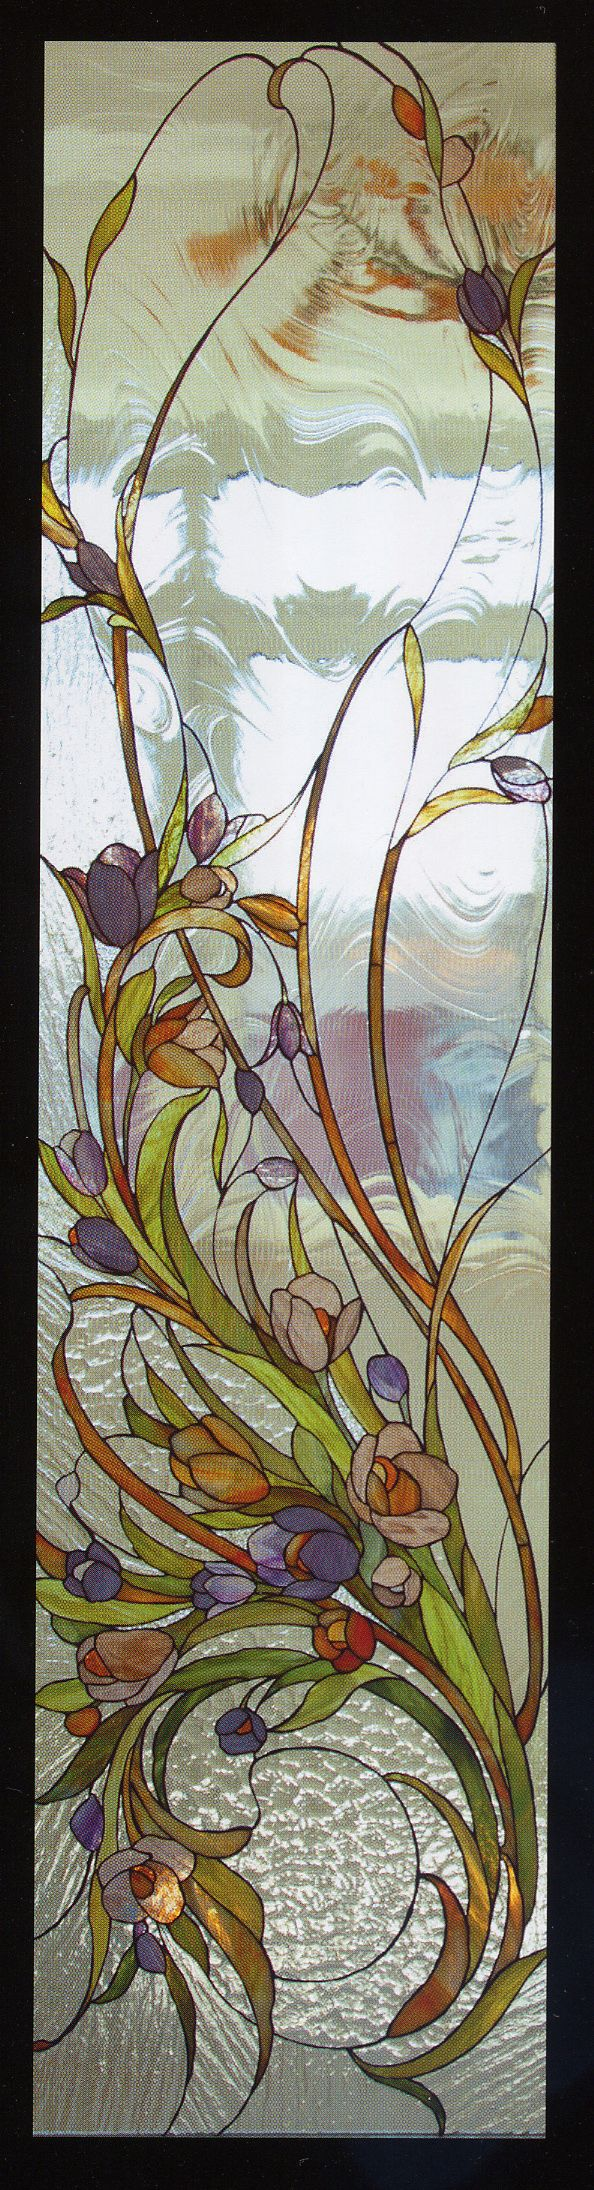 vidriera flores ventana cristal stained glass flower